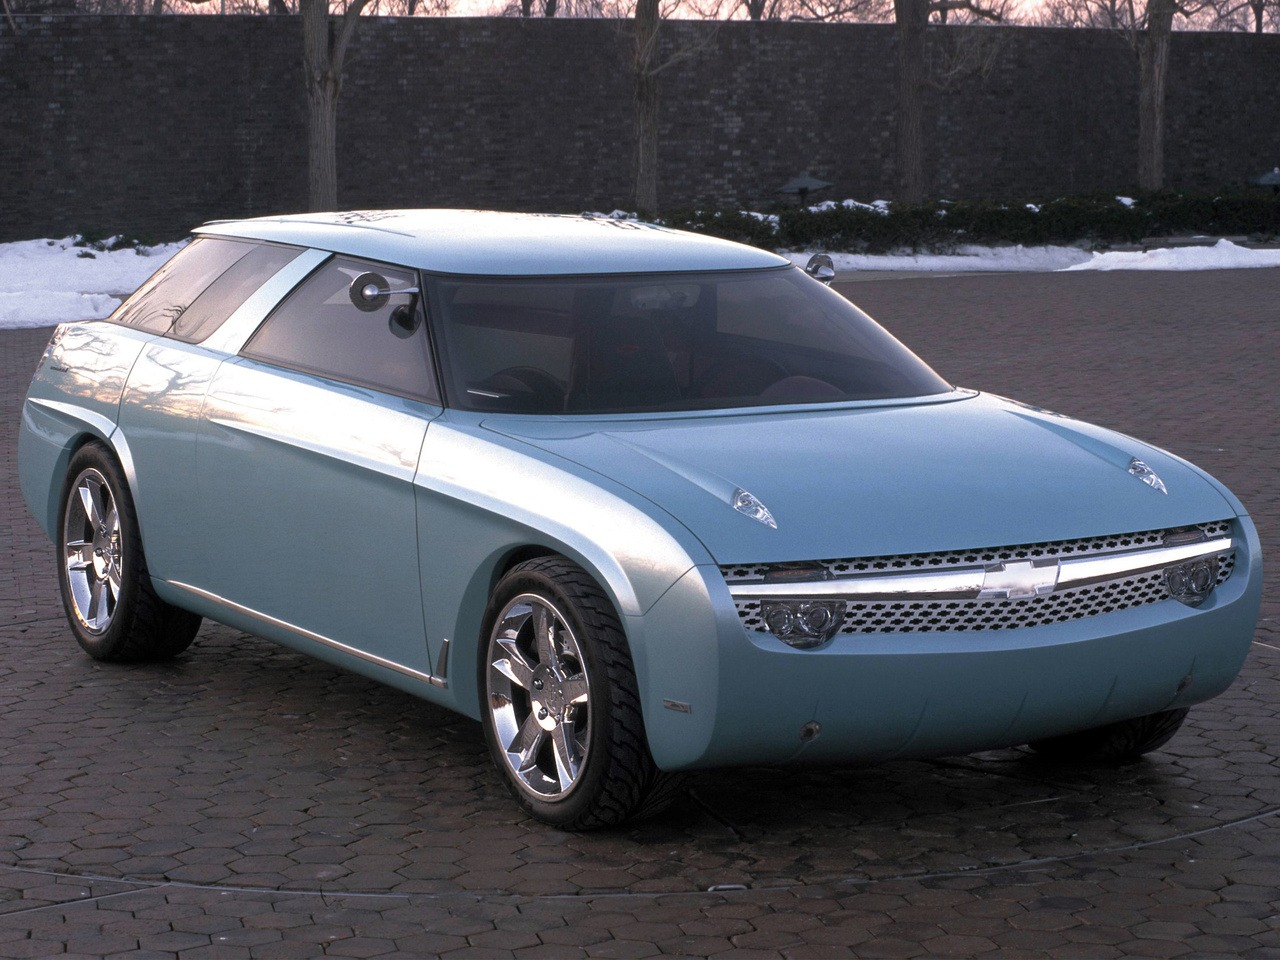 Chevy Nomad Concept Car